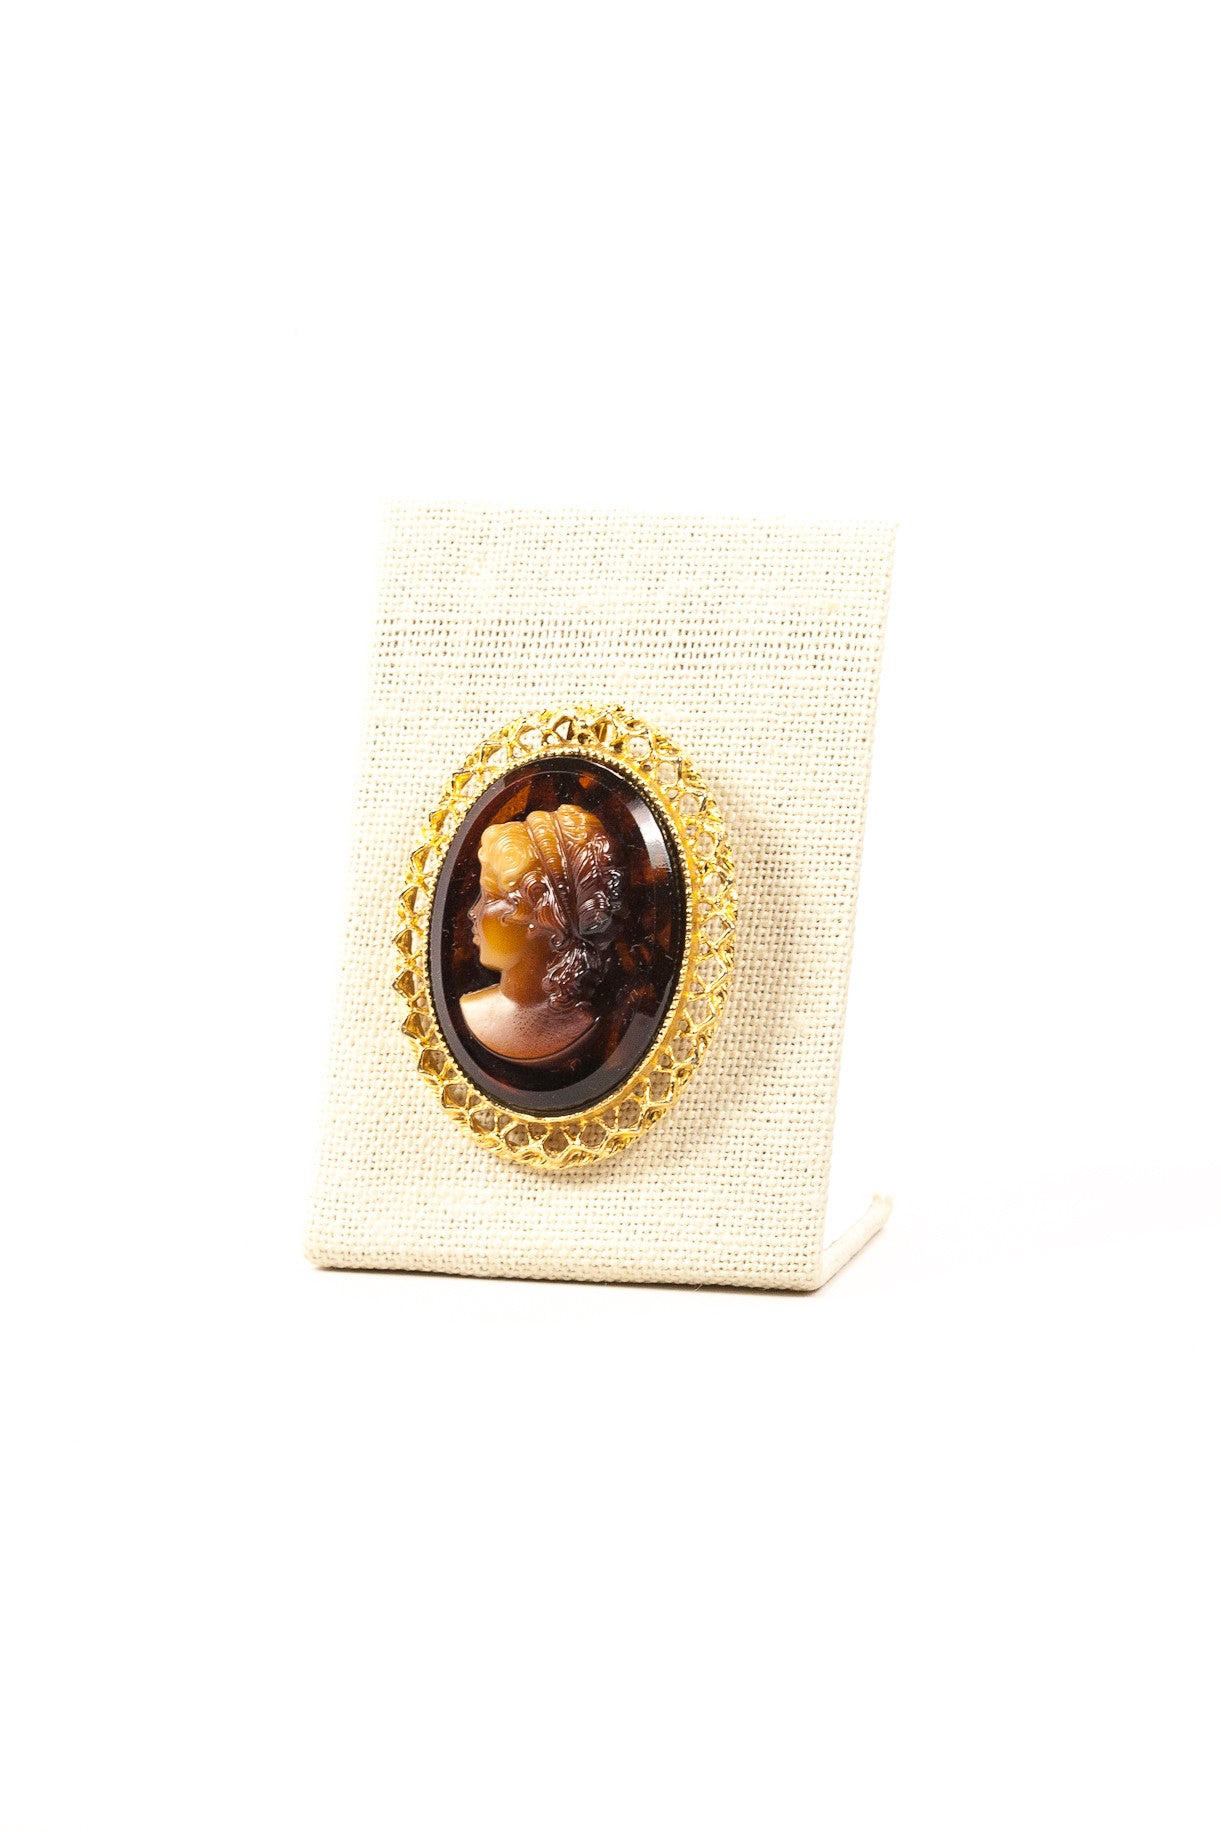 60's__Vintage__Amber Cameo Brooch